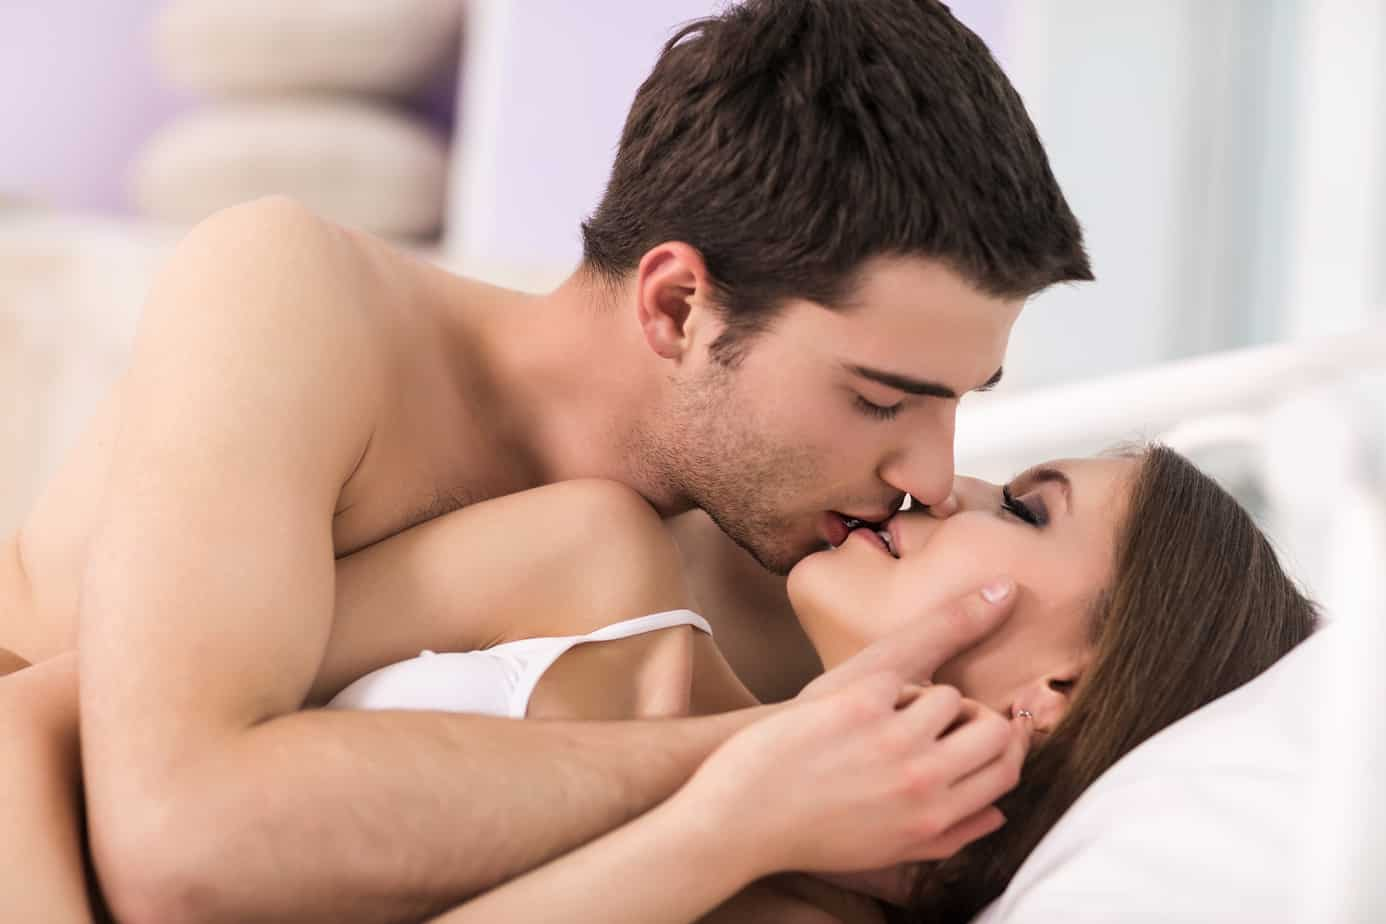 Kissing moaning while How to